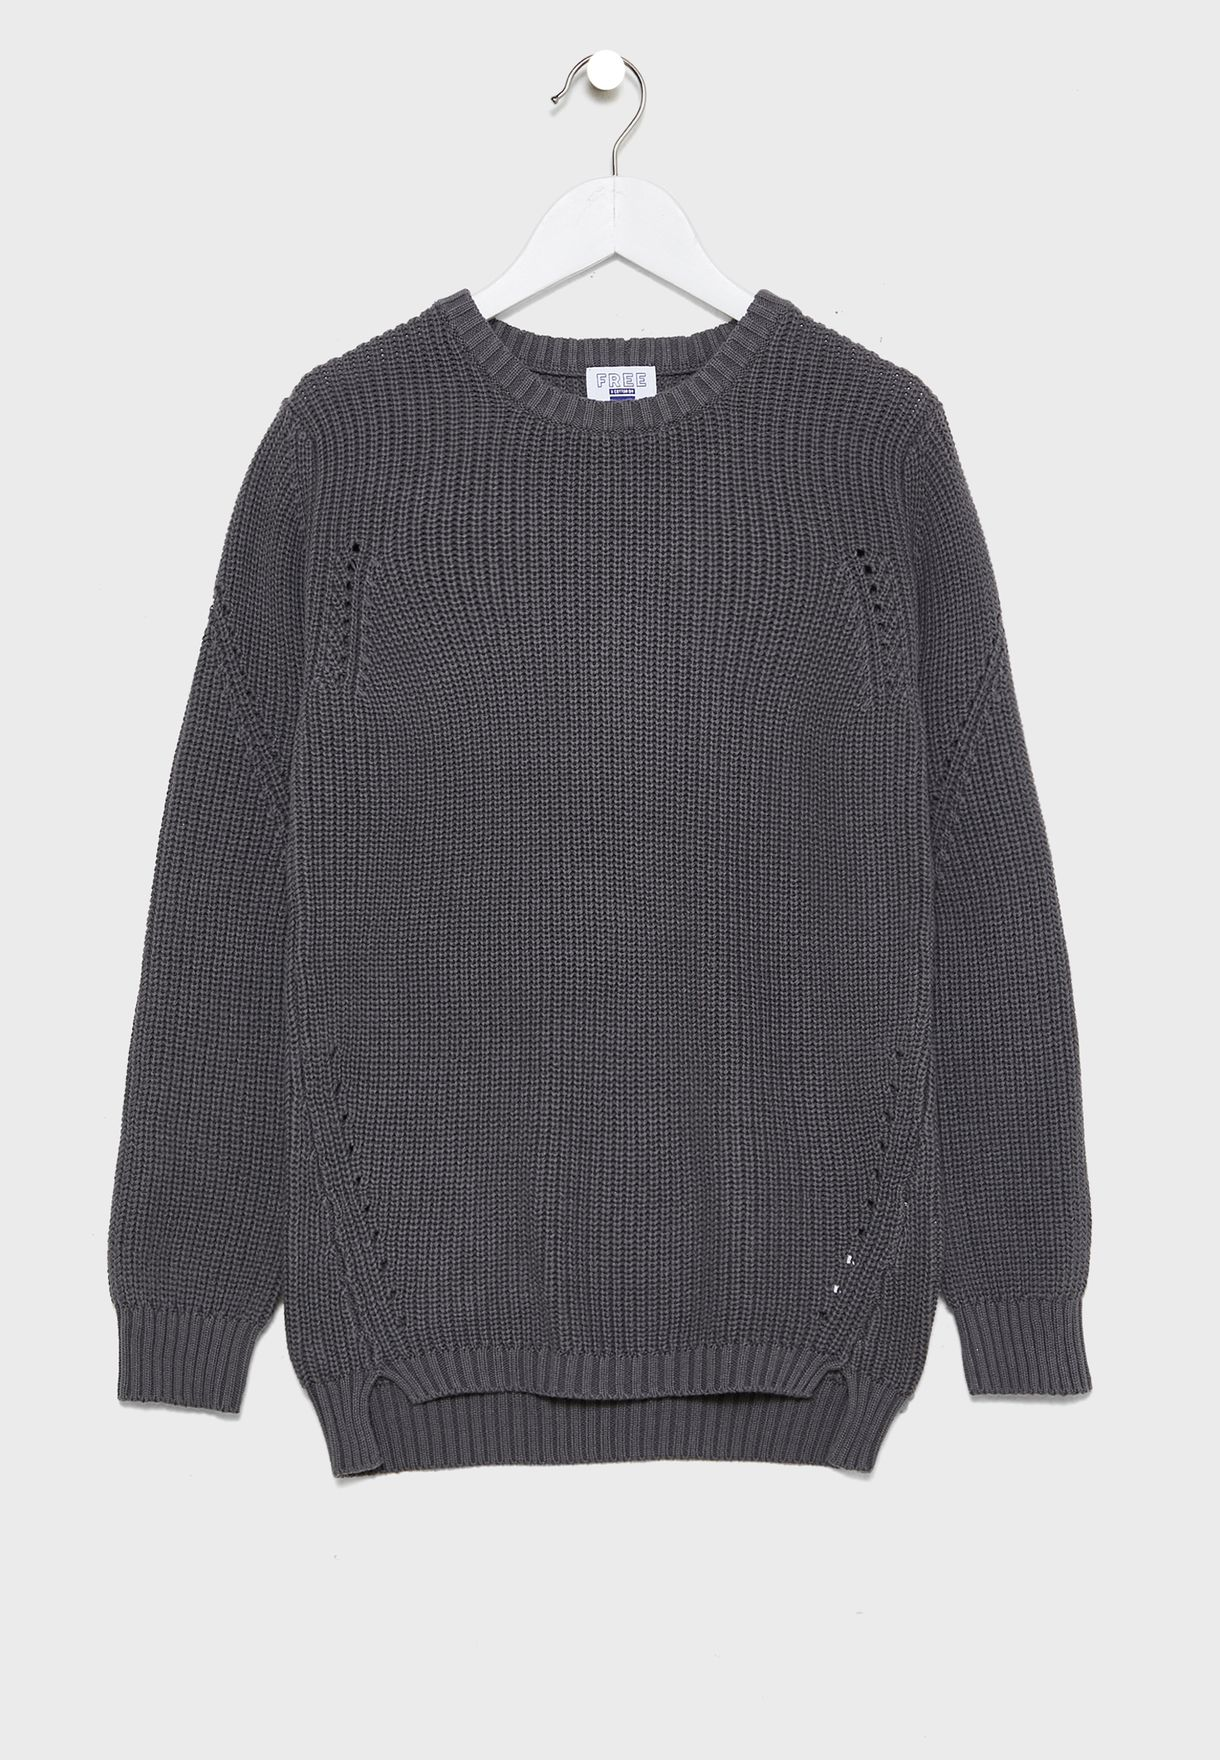 Youth Knitted Sweater